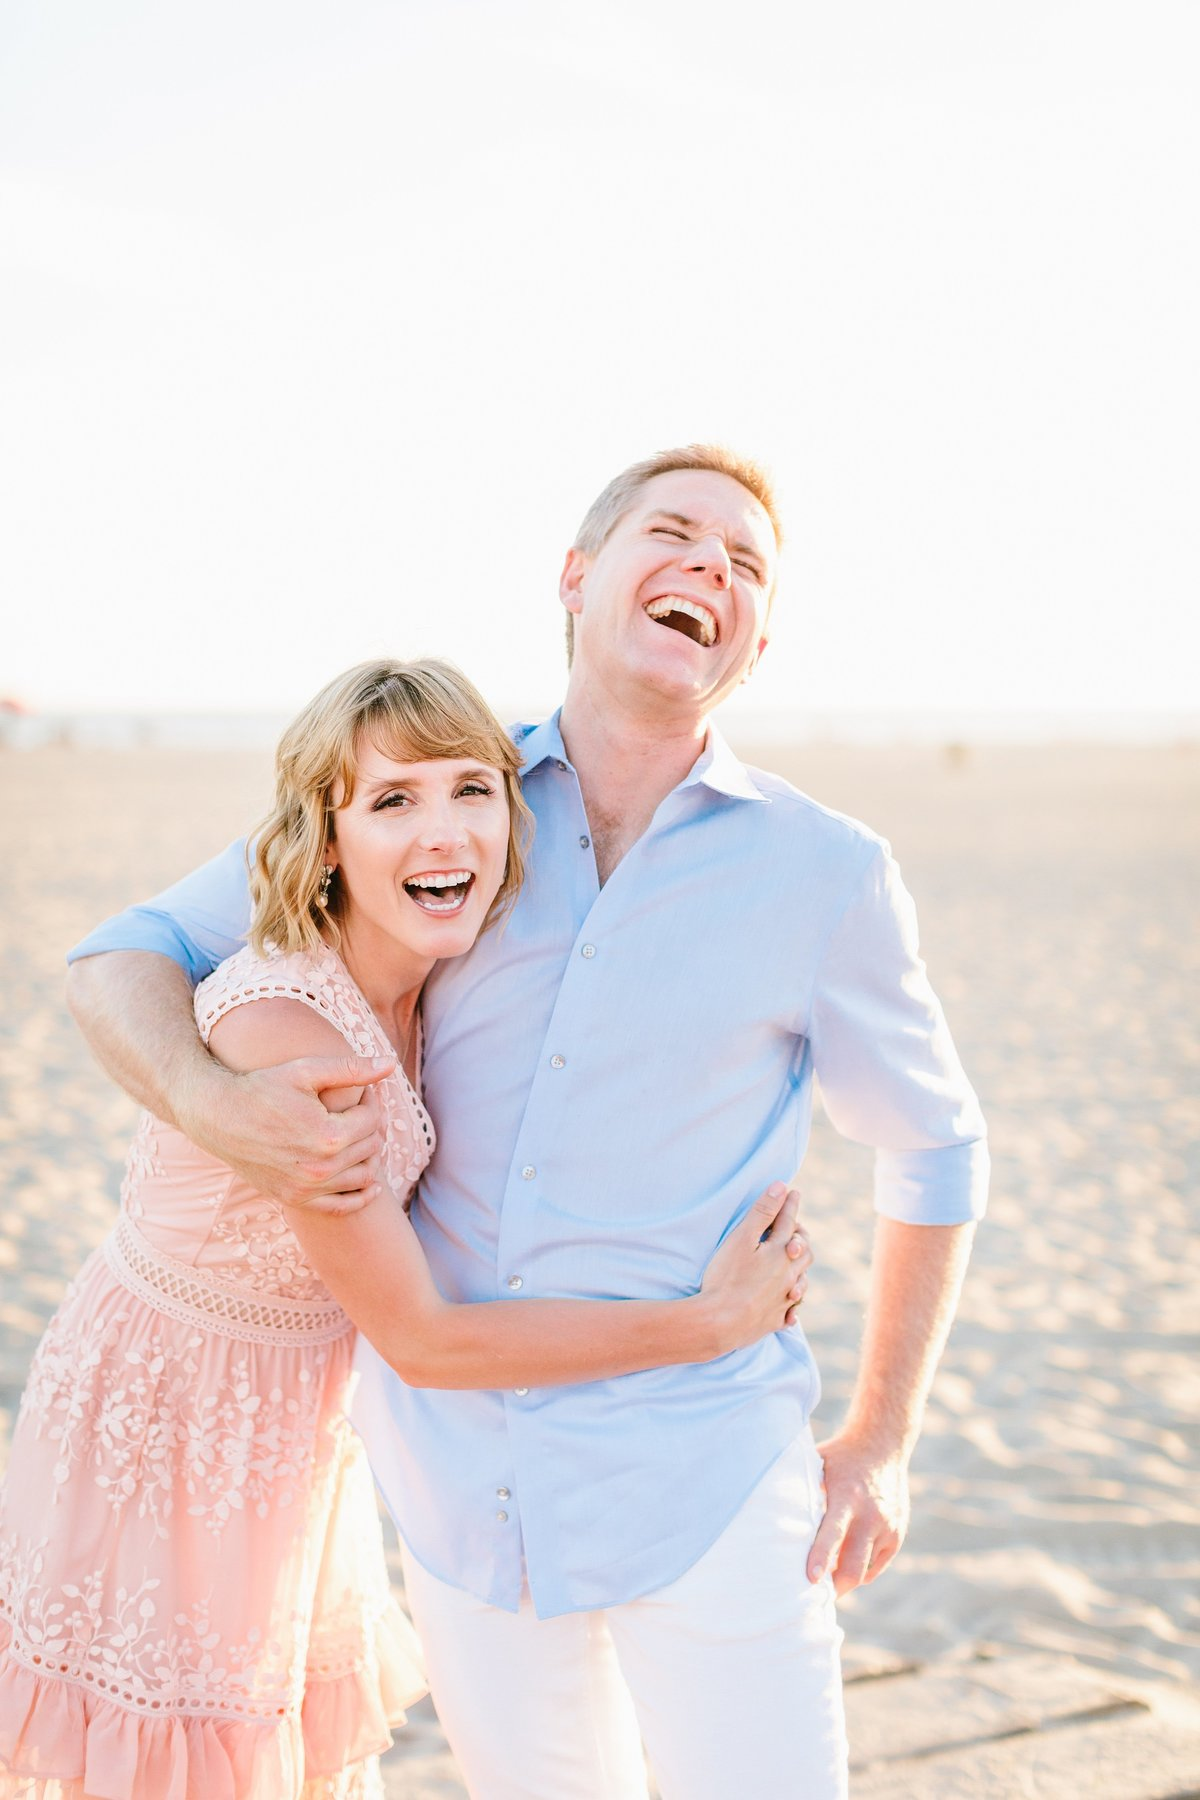 Best California Engagement Photographer_Jodee Debes Photography_106